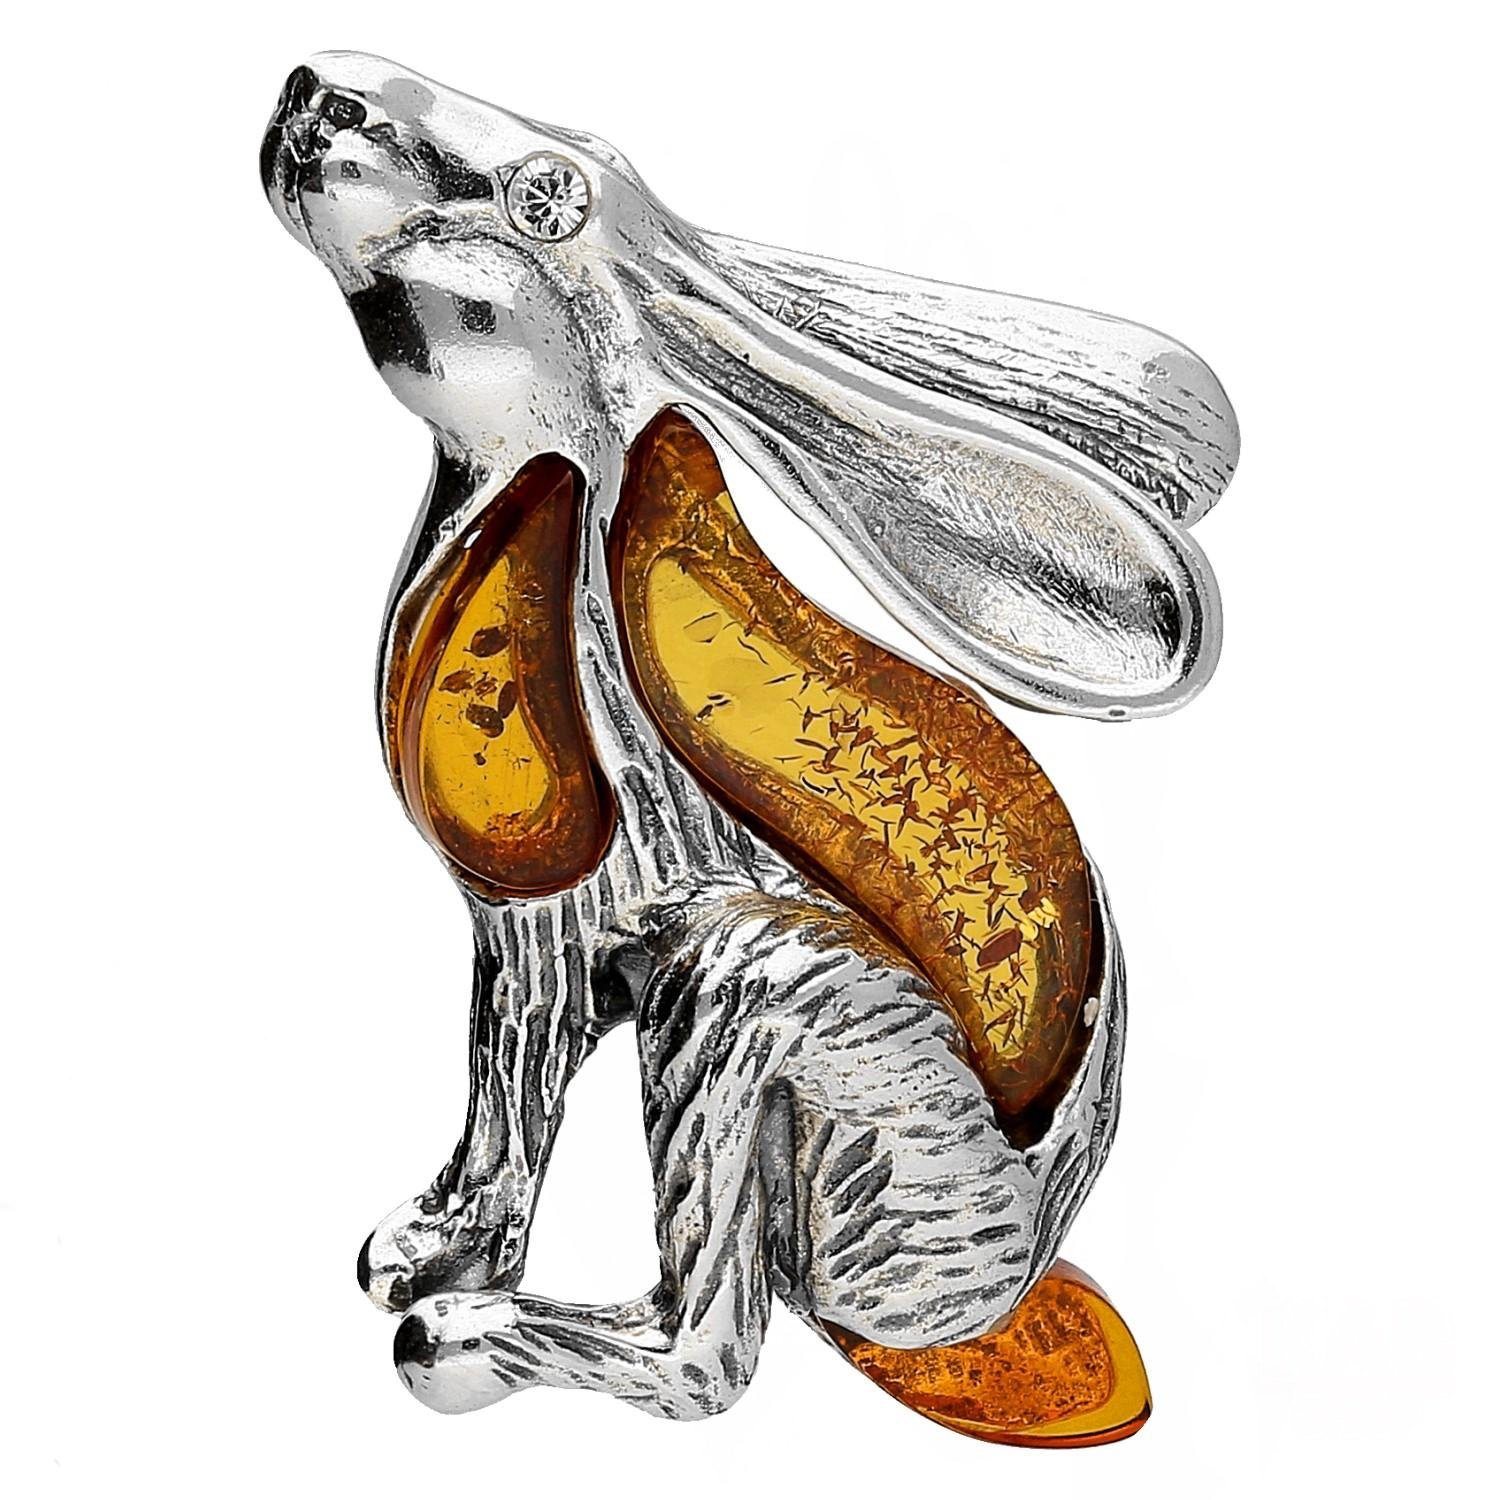 BALTIC AMBER GEMSTONE & STERLING SILVER 925 BROOCH / PIN rabbit. KAB-93